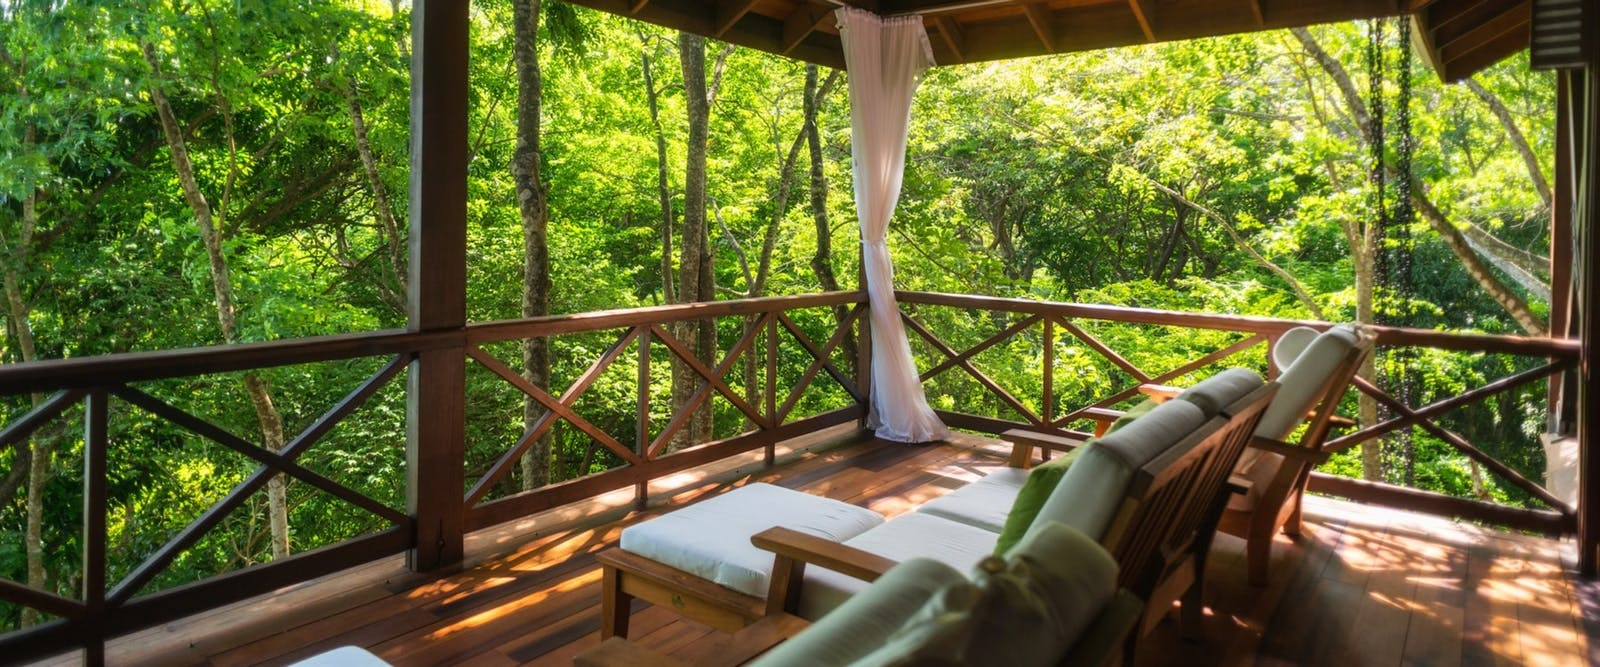 Private Terrace in Zing Zing Villa at Secret Bay, Dominica